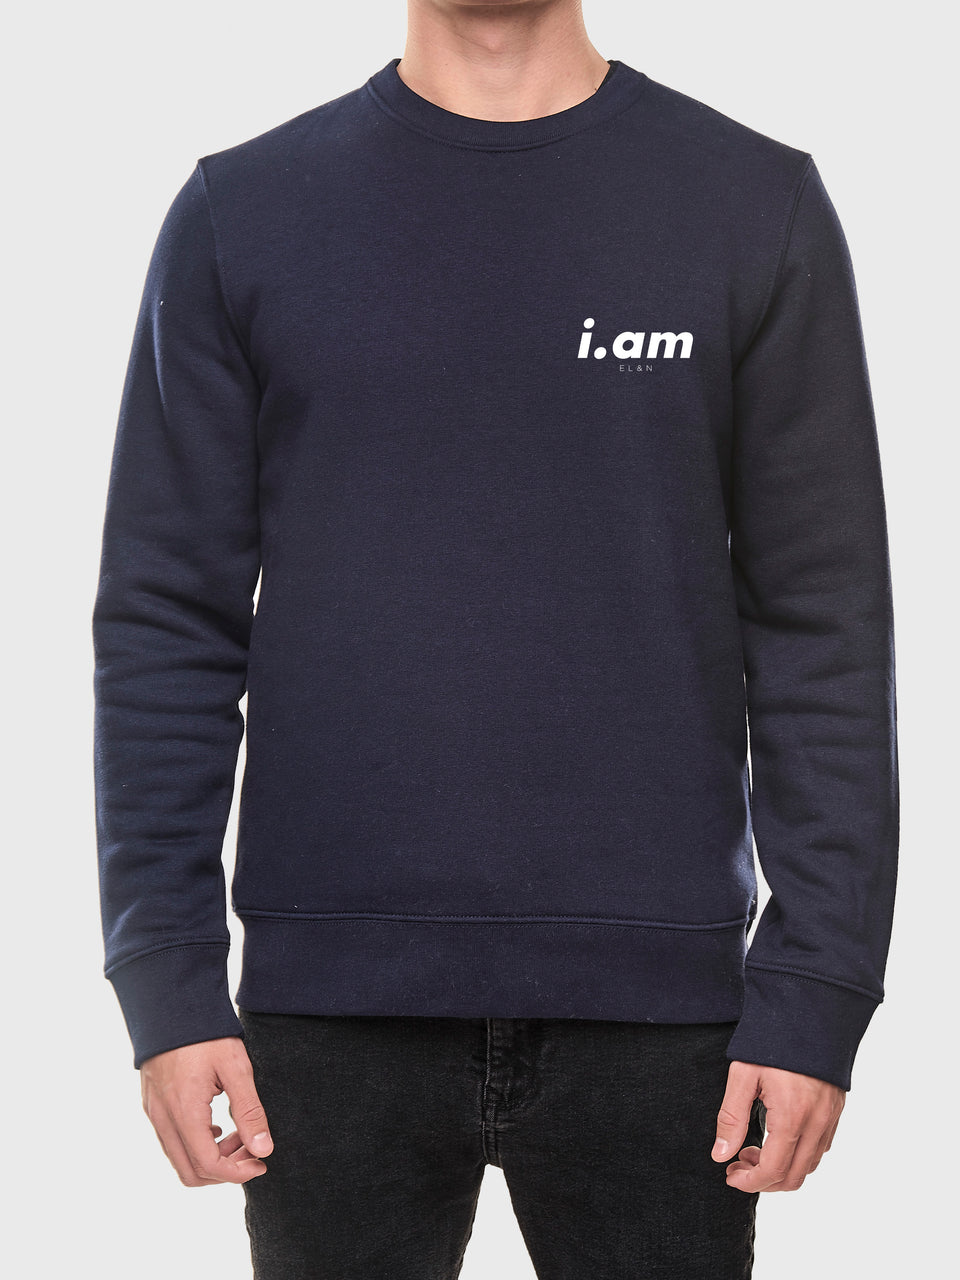 Not a copy - Navy - Unisex sweatshirt